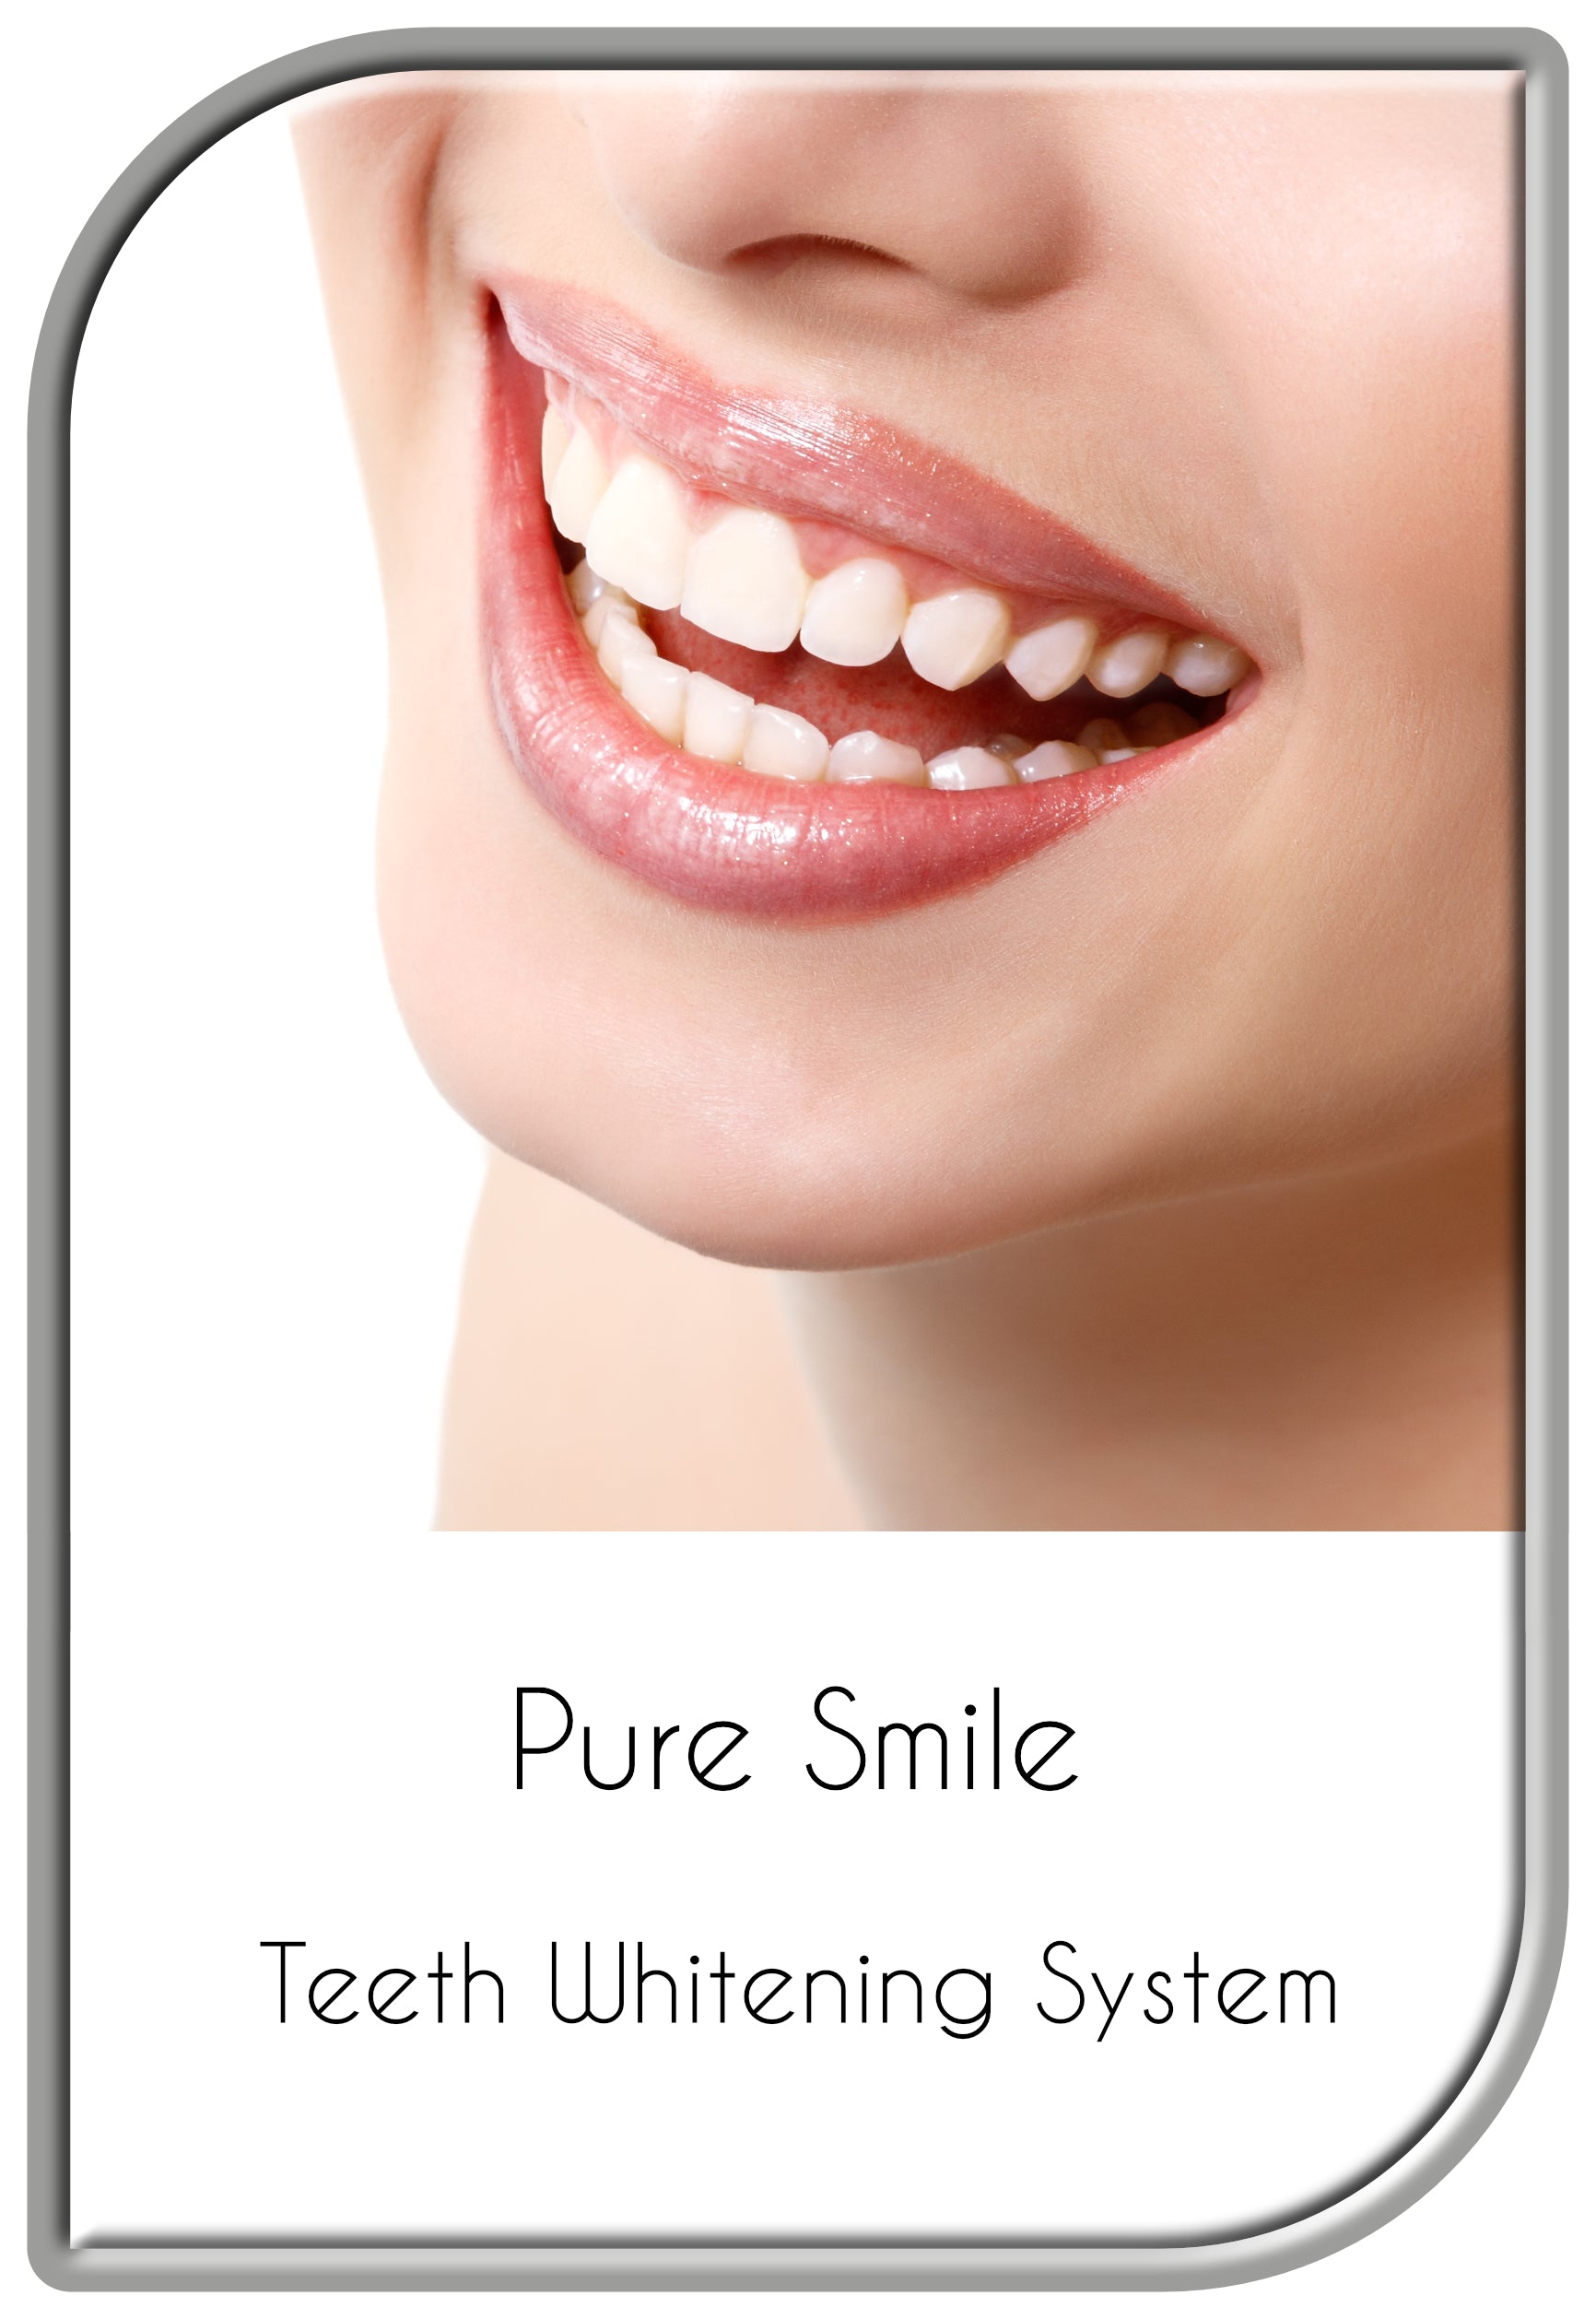 Pure Smile Teeth Whitening